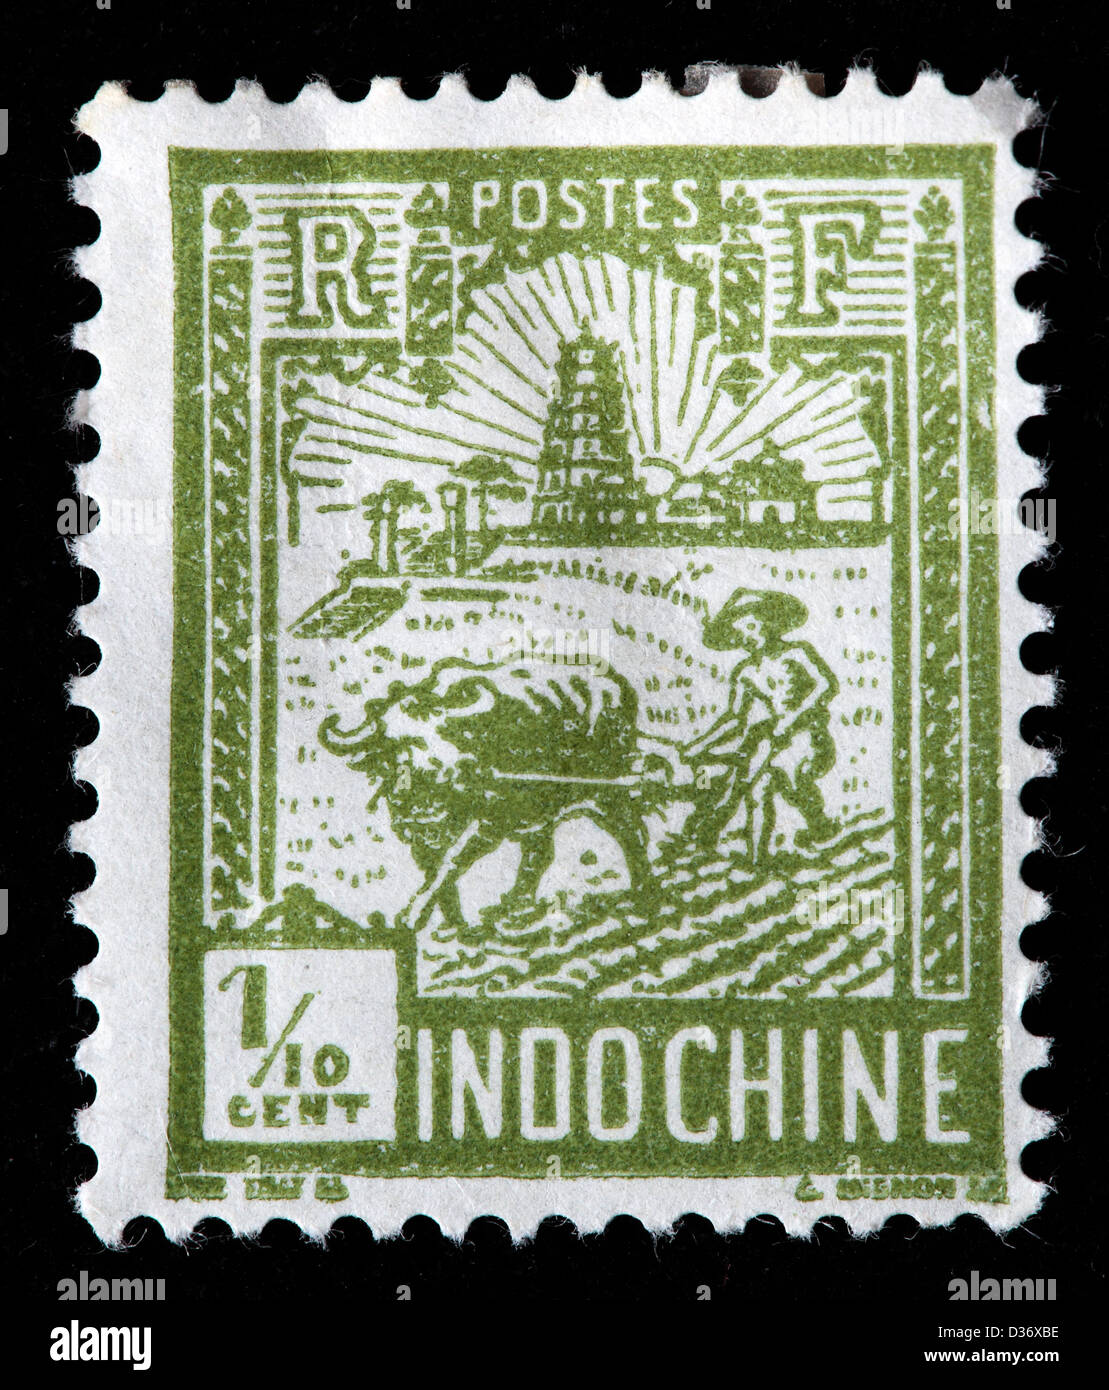 Plowing, Tower of Confucius, Indochina, postage stamp, 1927 - Stock Image